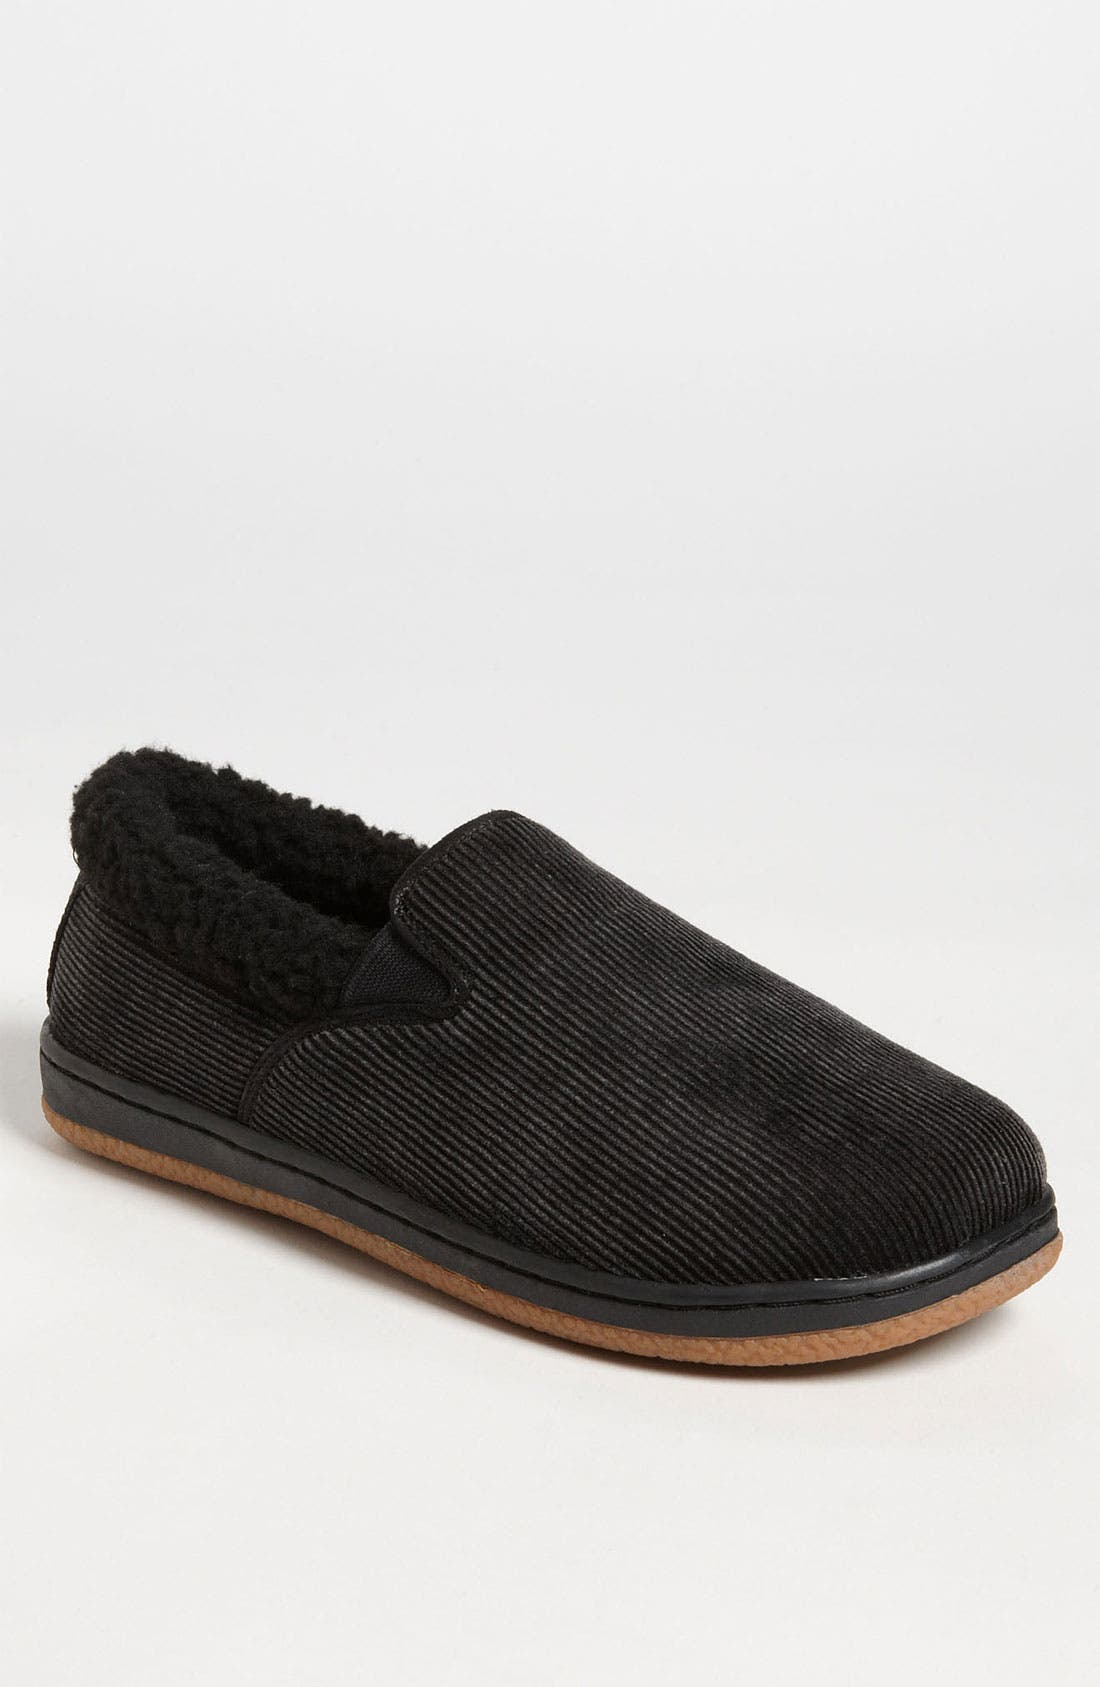 Alternate Image 1 Selected - L.B. Evans 'Charlie' Slipper (Online Only)